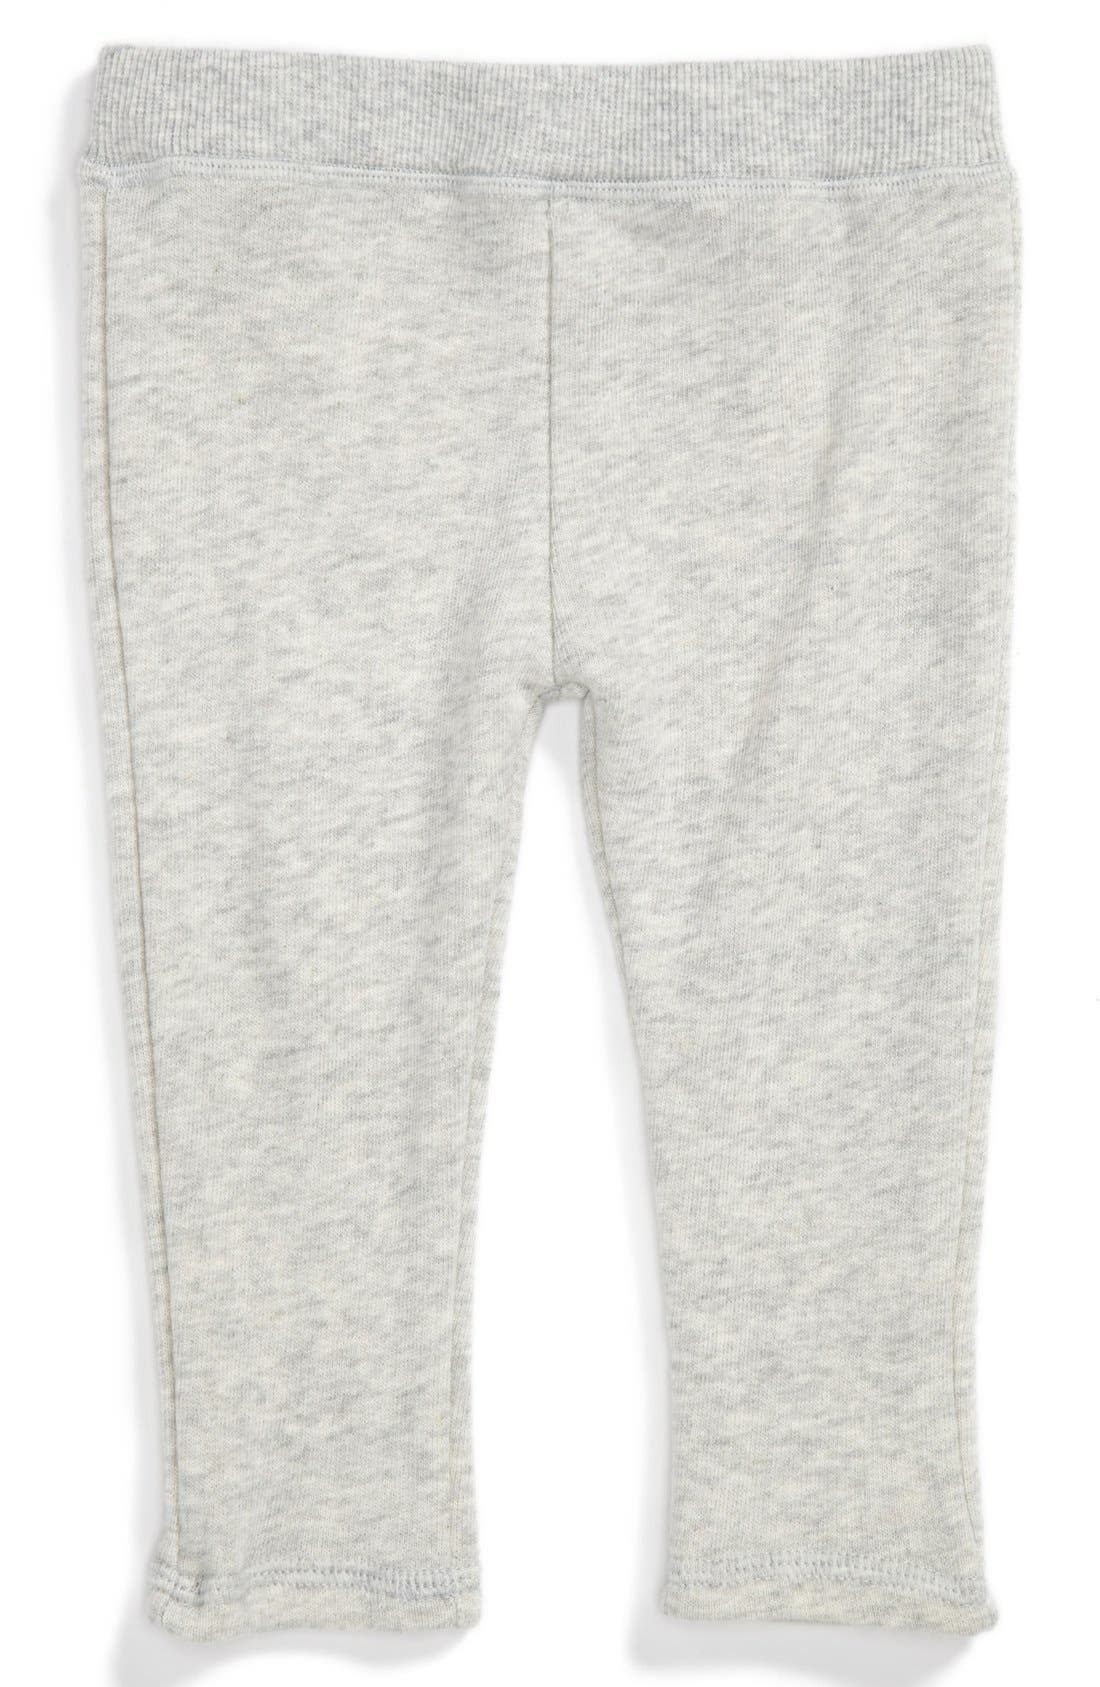 Alternate Image 1 Selected - Peek 'Micki' Sweatpants (Baby)